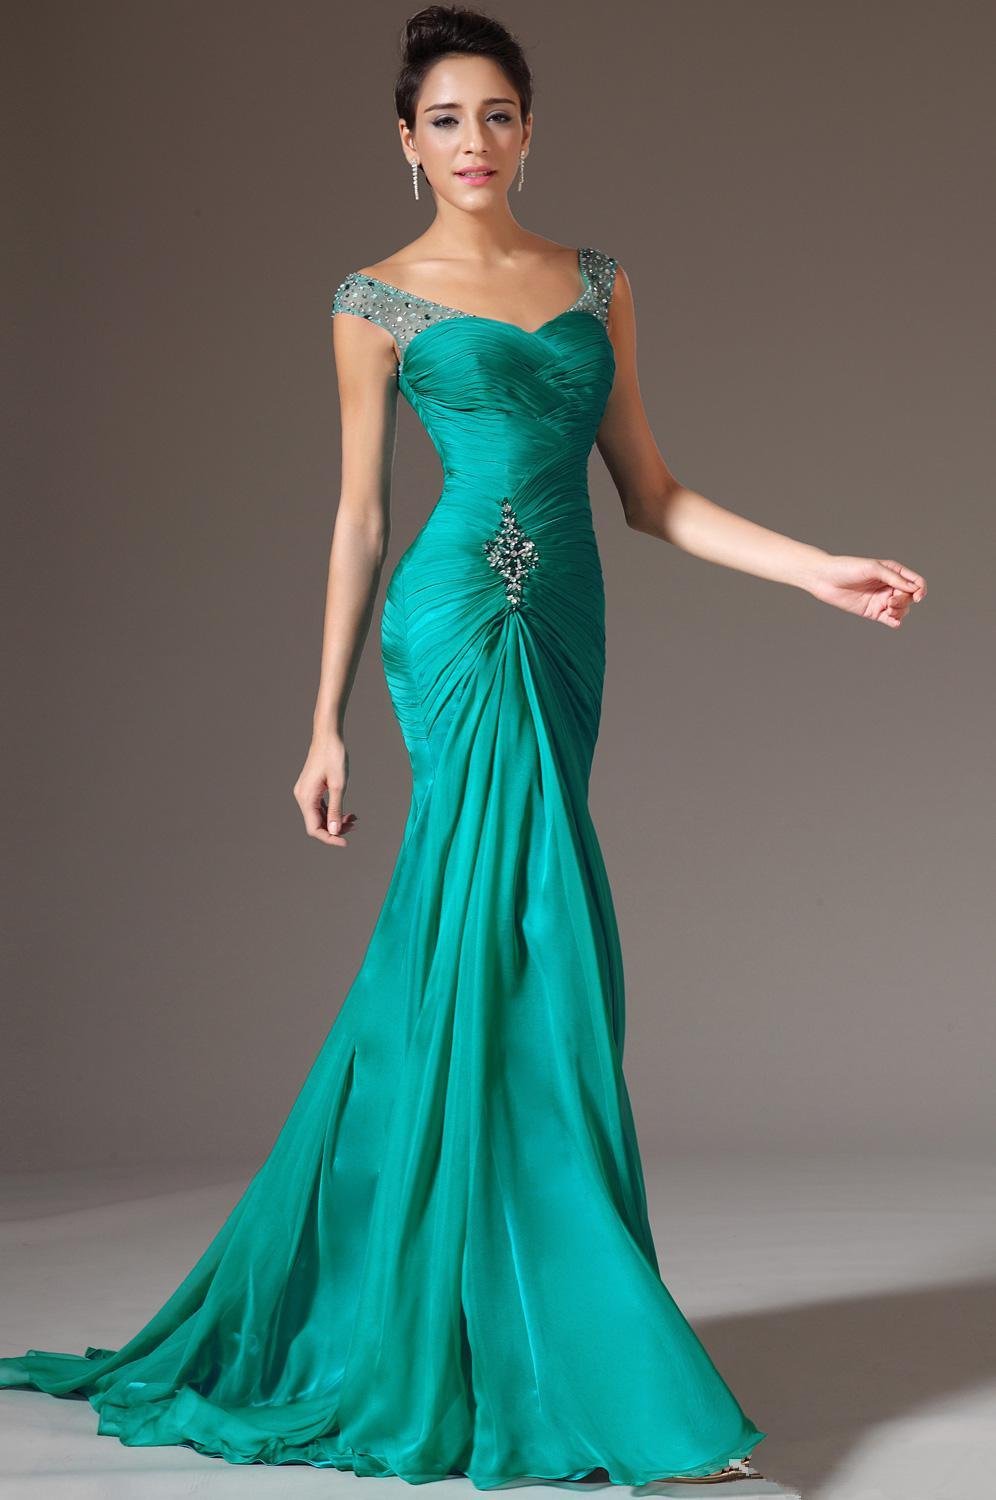 night dress for wedding party » Wedding Dresses Designs, Ideas and ...